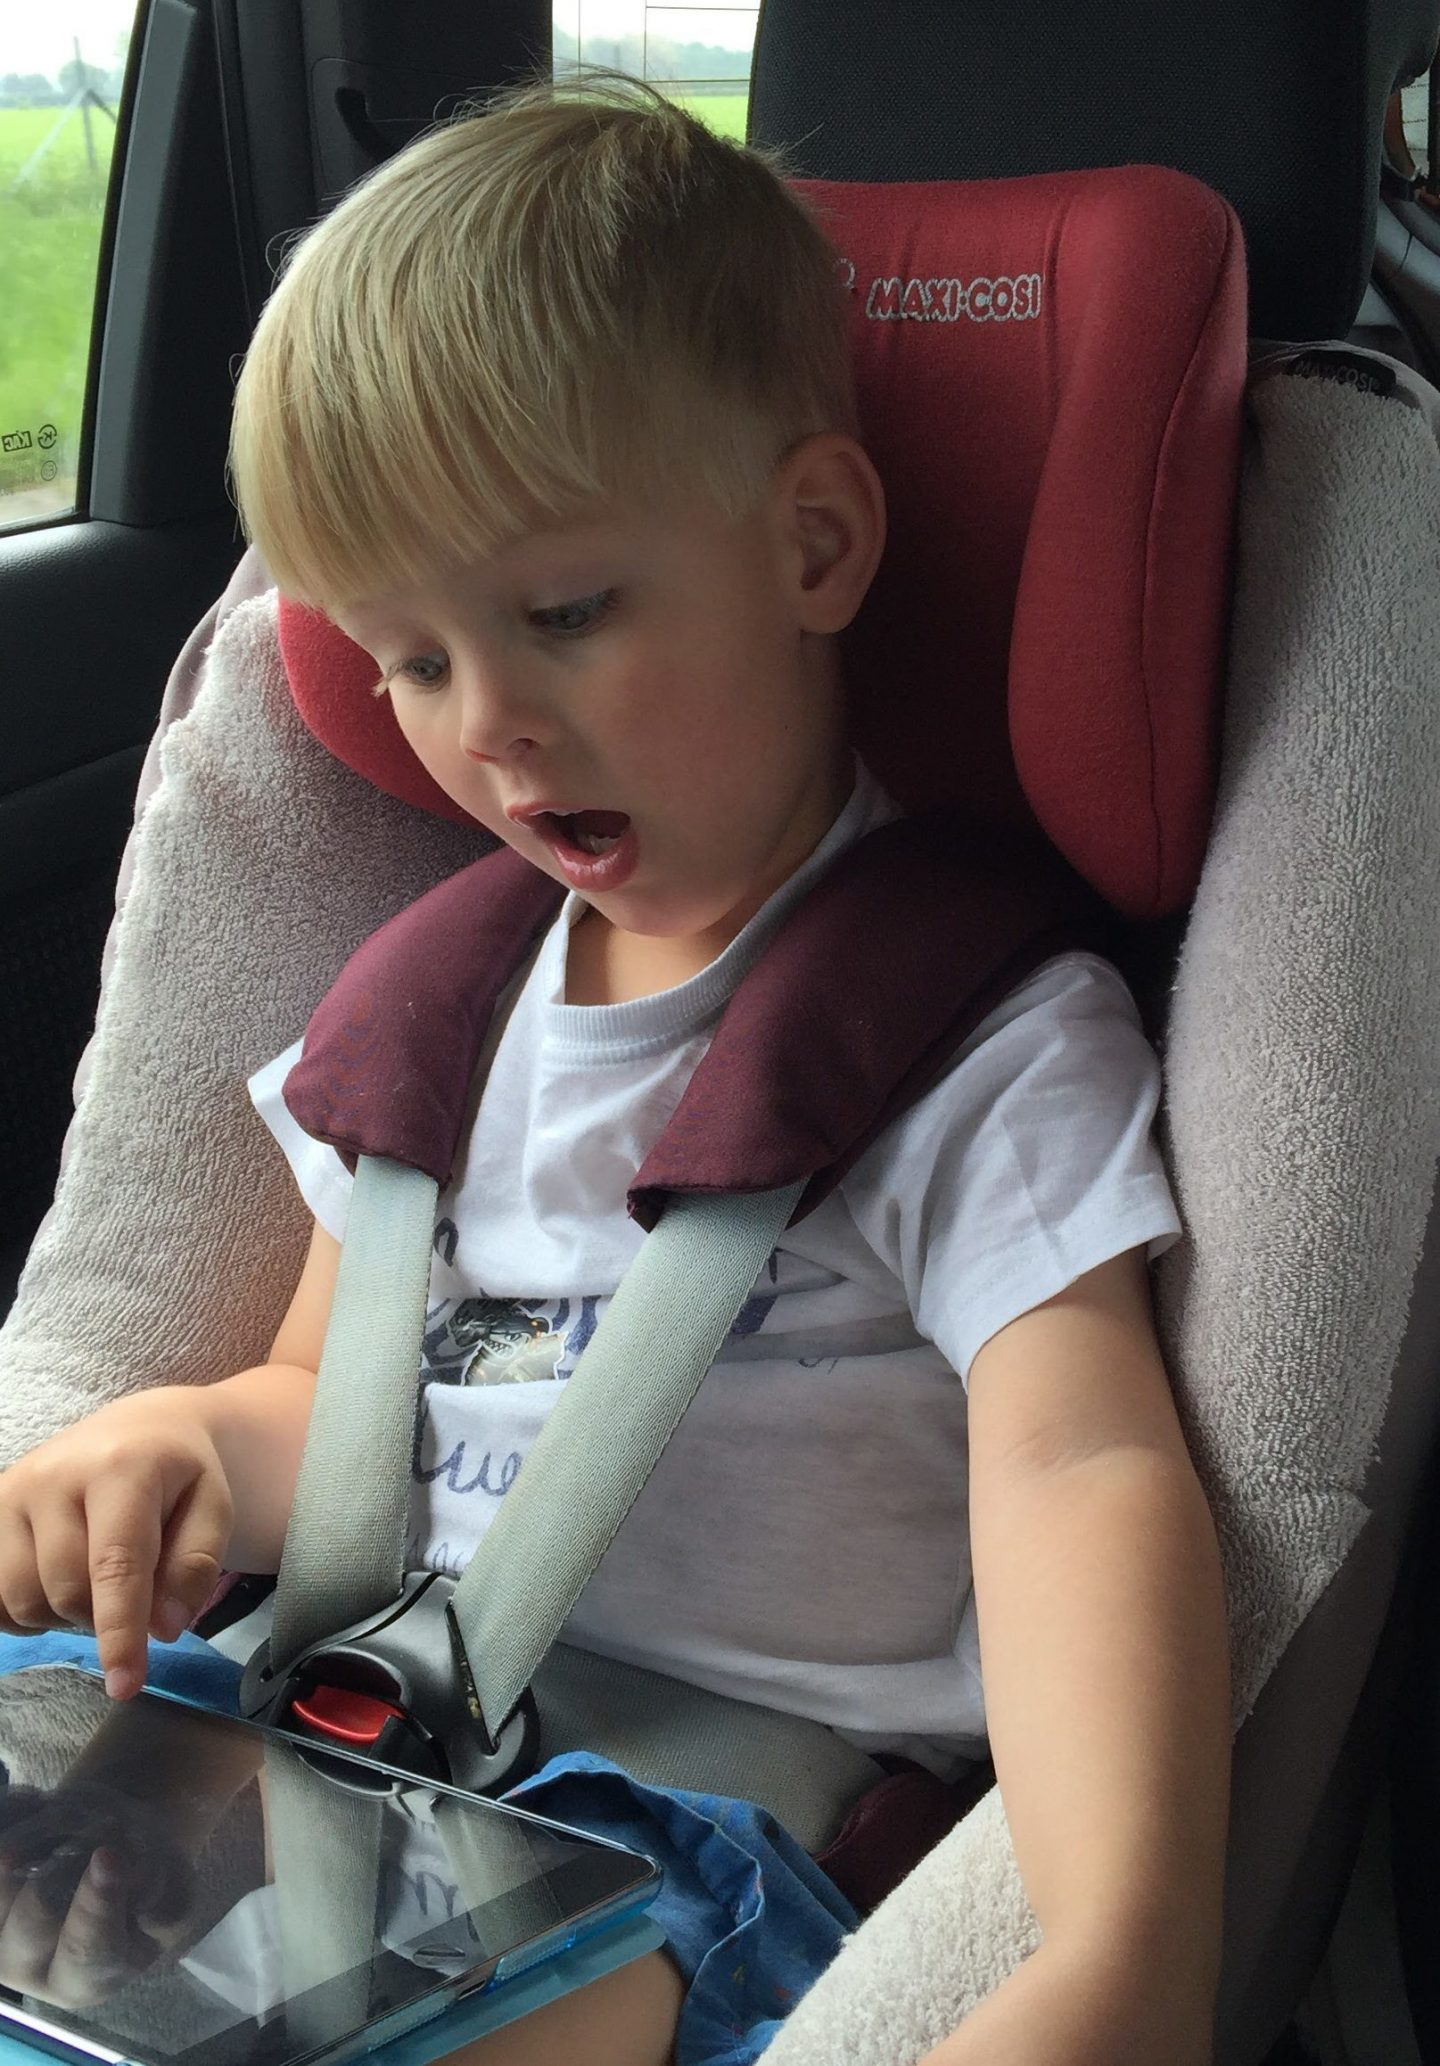 Share your tips on how to survive a long car journey with kids to enter to win an Apple iPad Mini 4 – 16GB Wi-Fi with JCT600